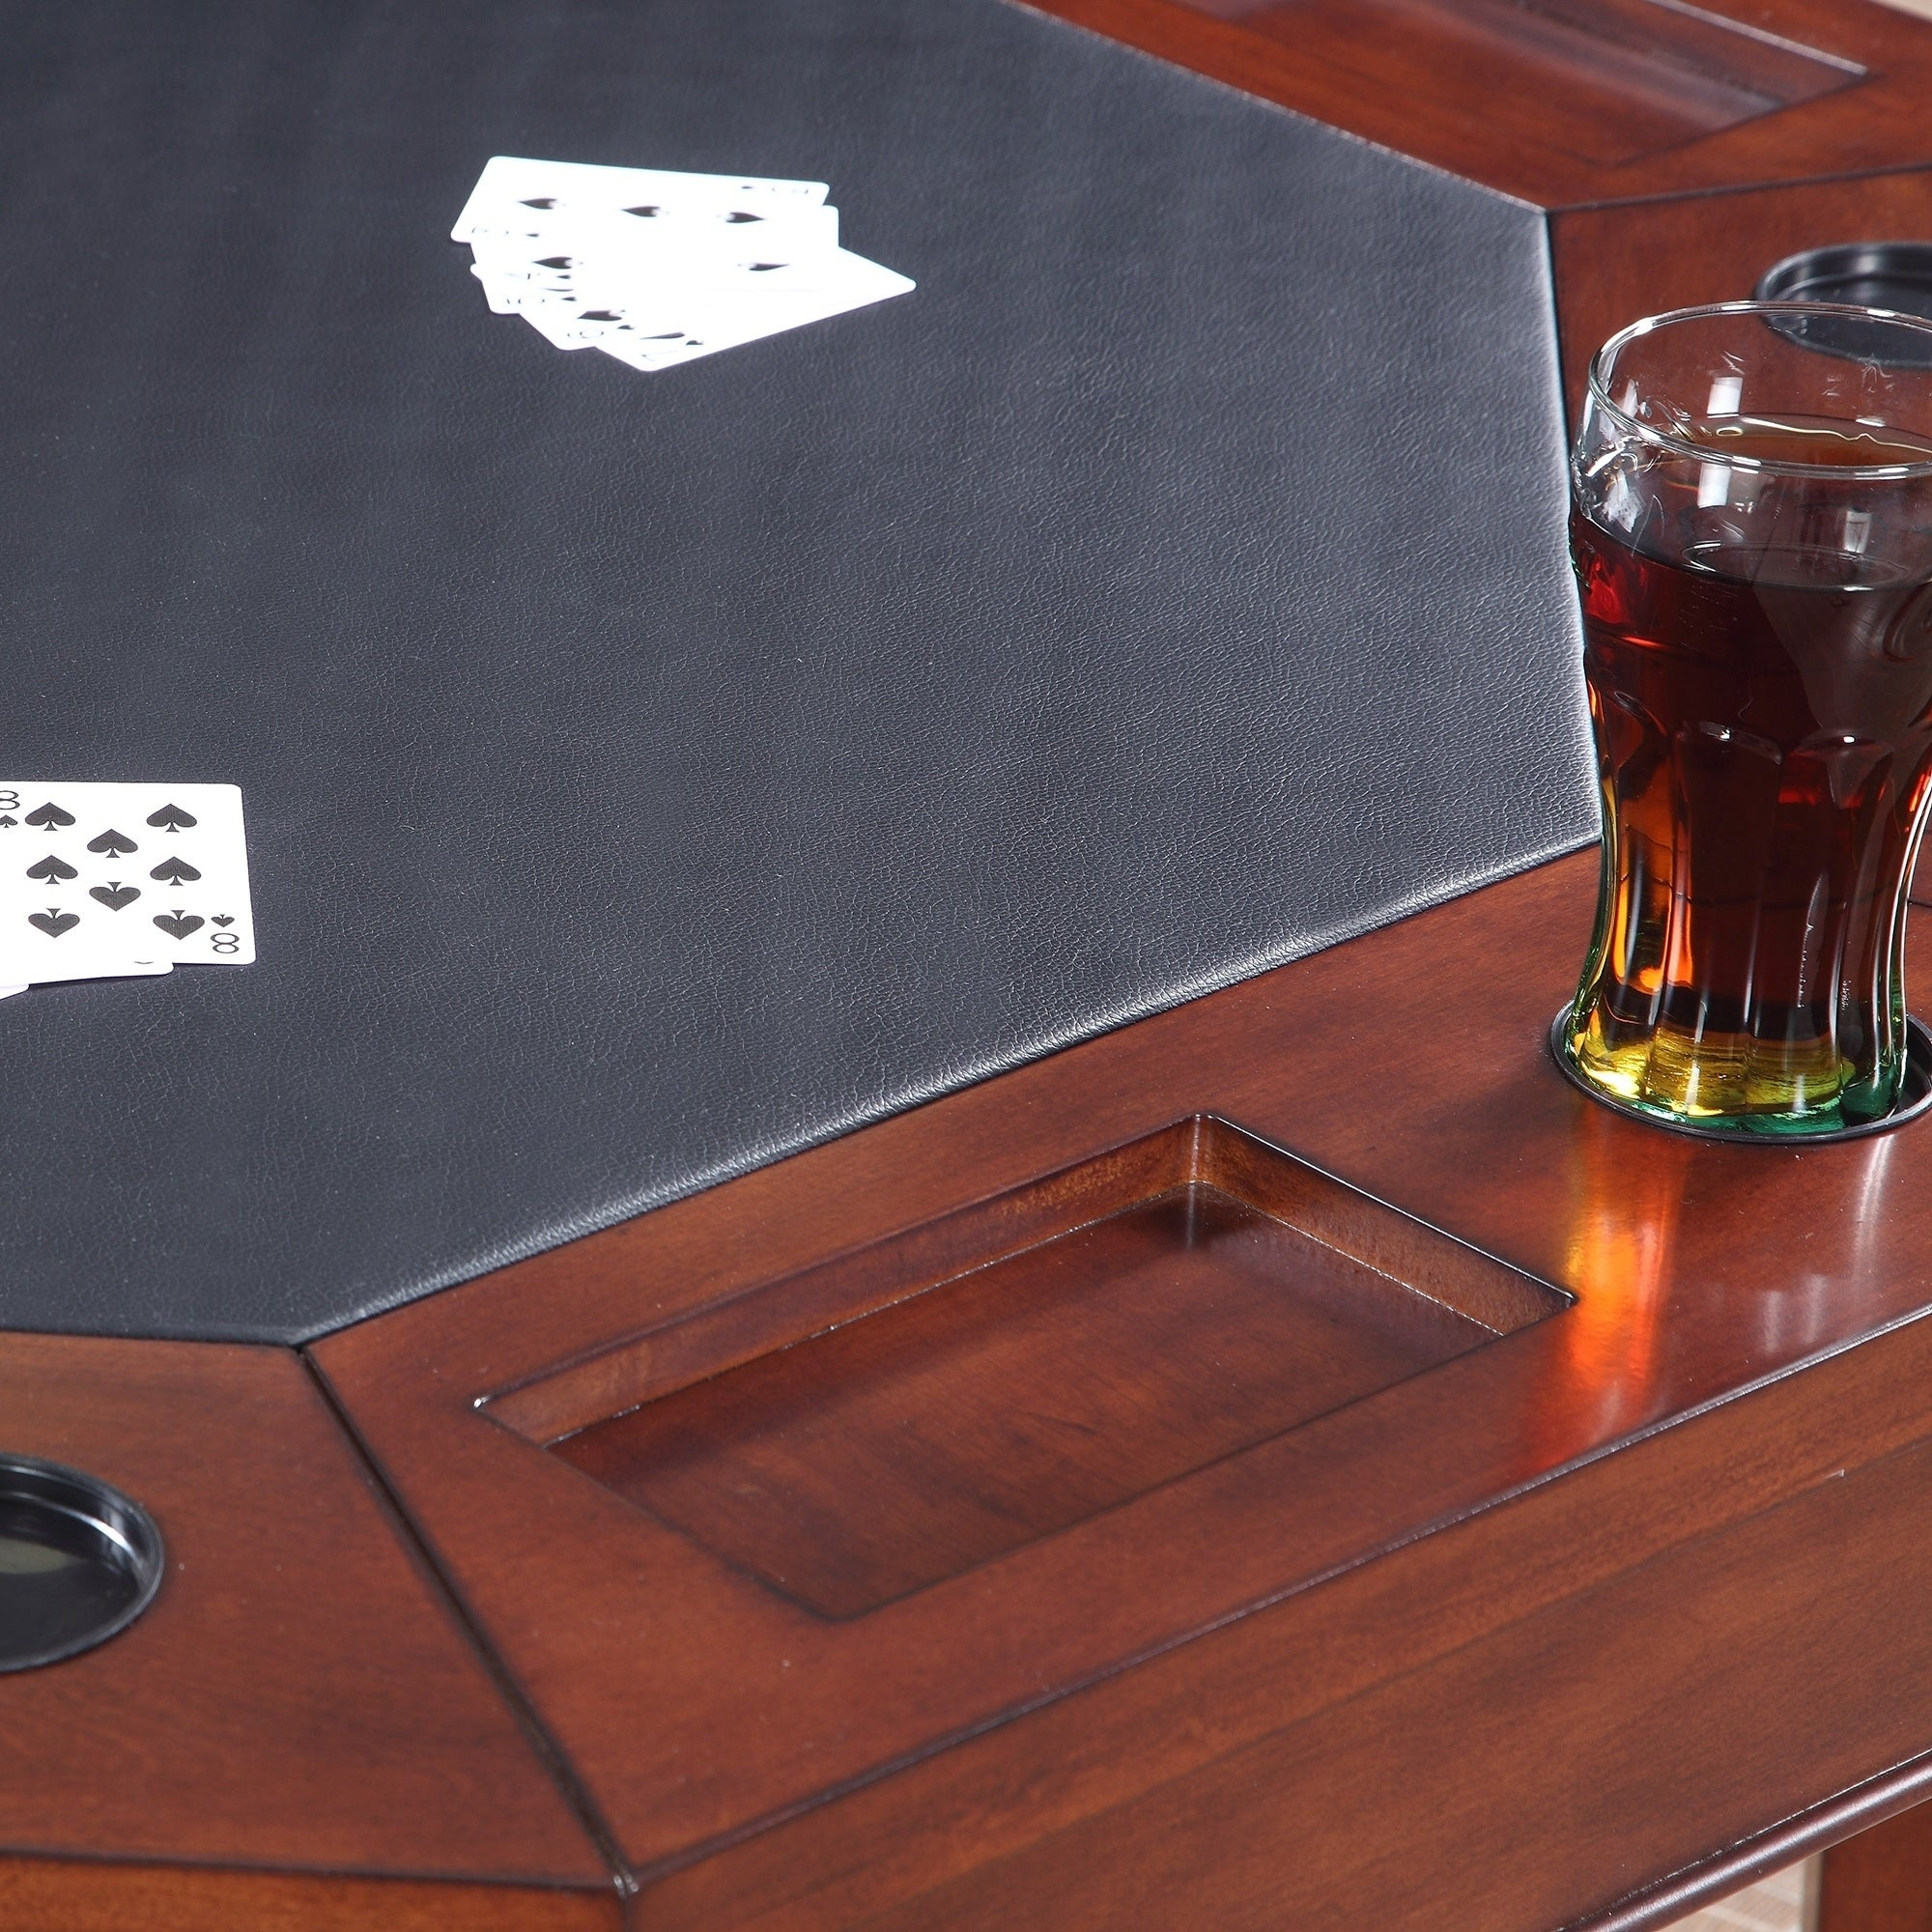 Hathaway Broadway 48-in Folding Poker Table u0026 Chairs Set - Free Shipping Today - Overstock - 24093293 & Hathaway Broadway 48-in Folding Poker Table u0026 Chairs Set - Free ...